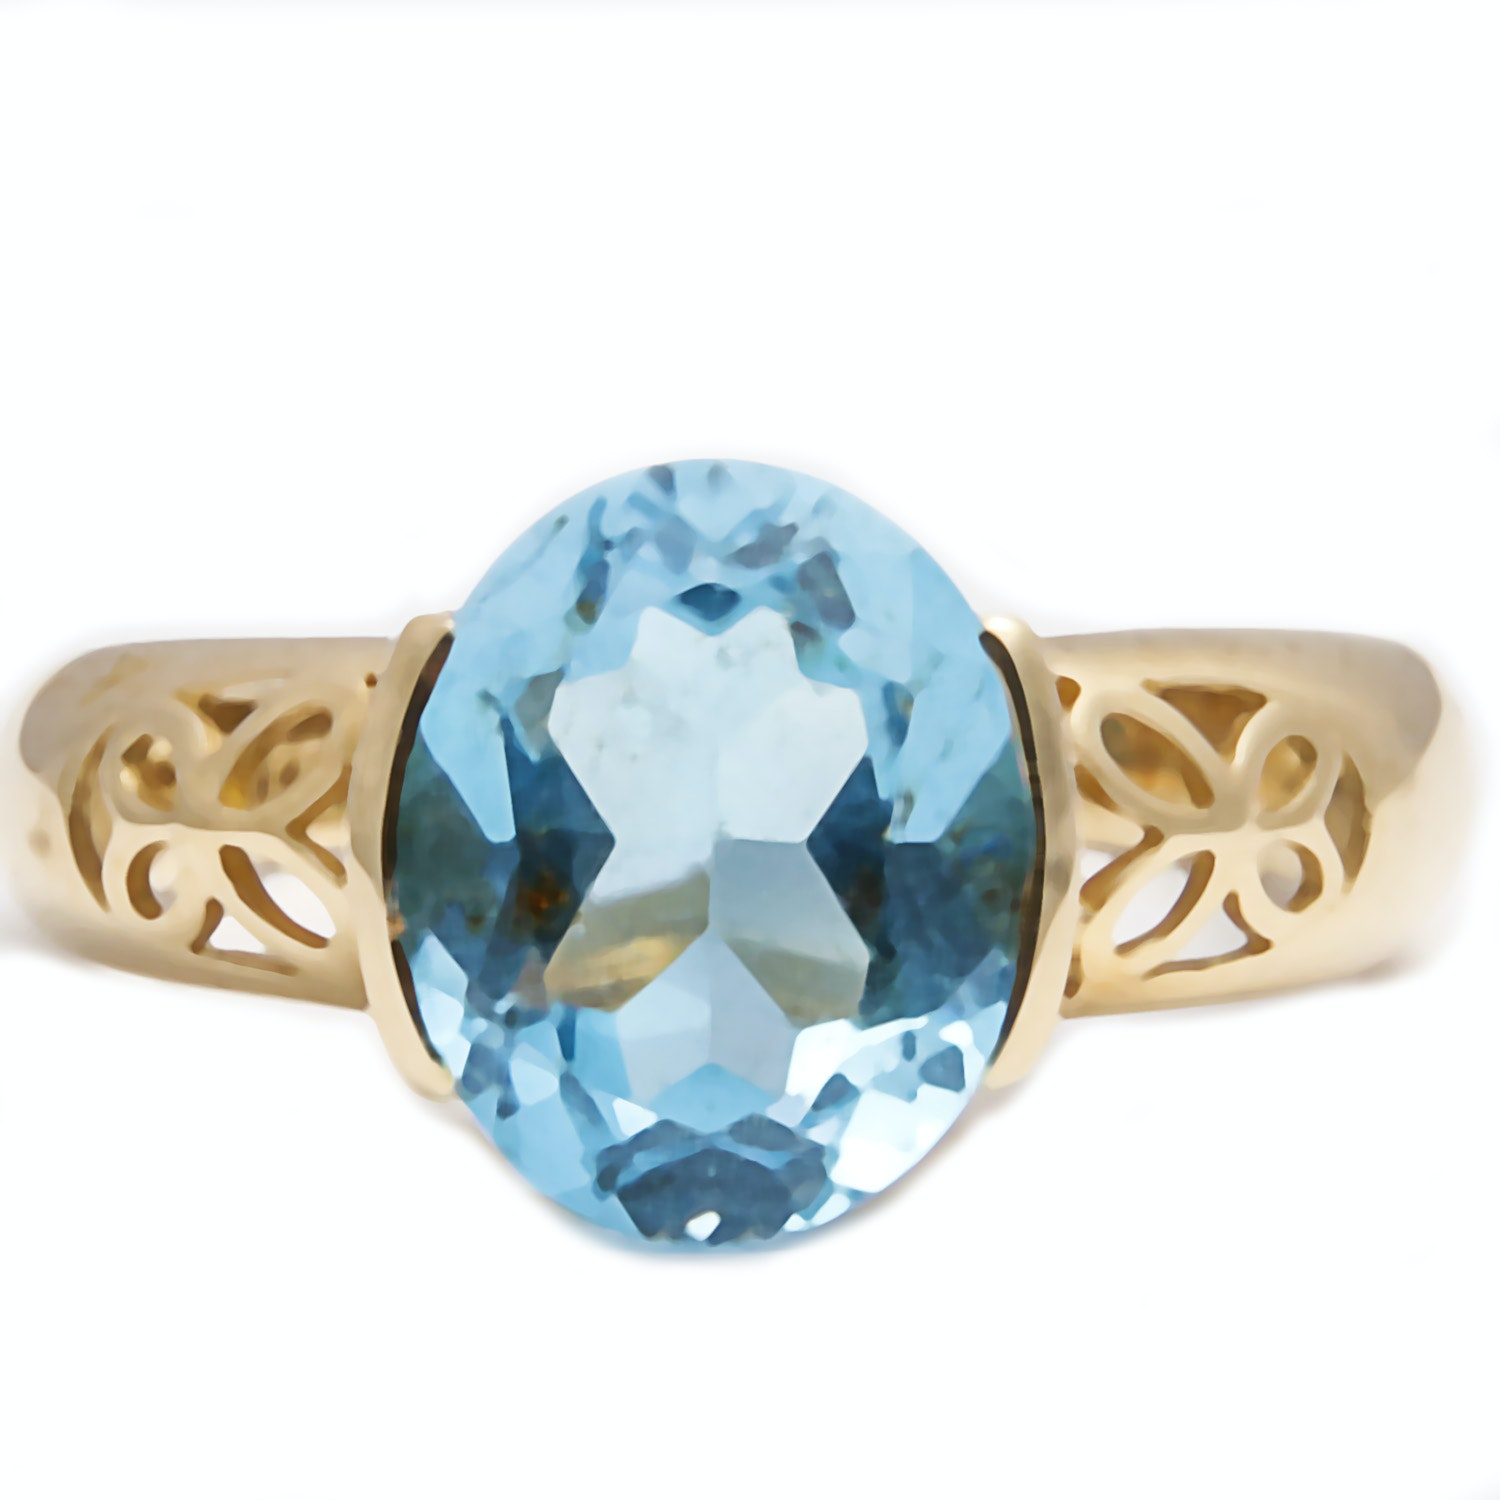 14K Gold Ring with Blue Topaz